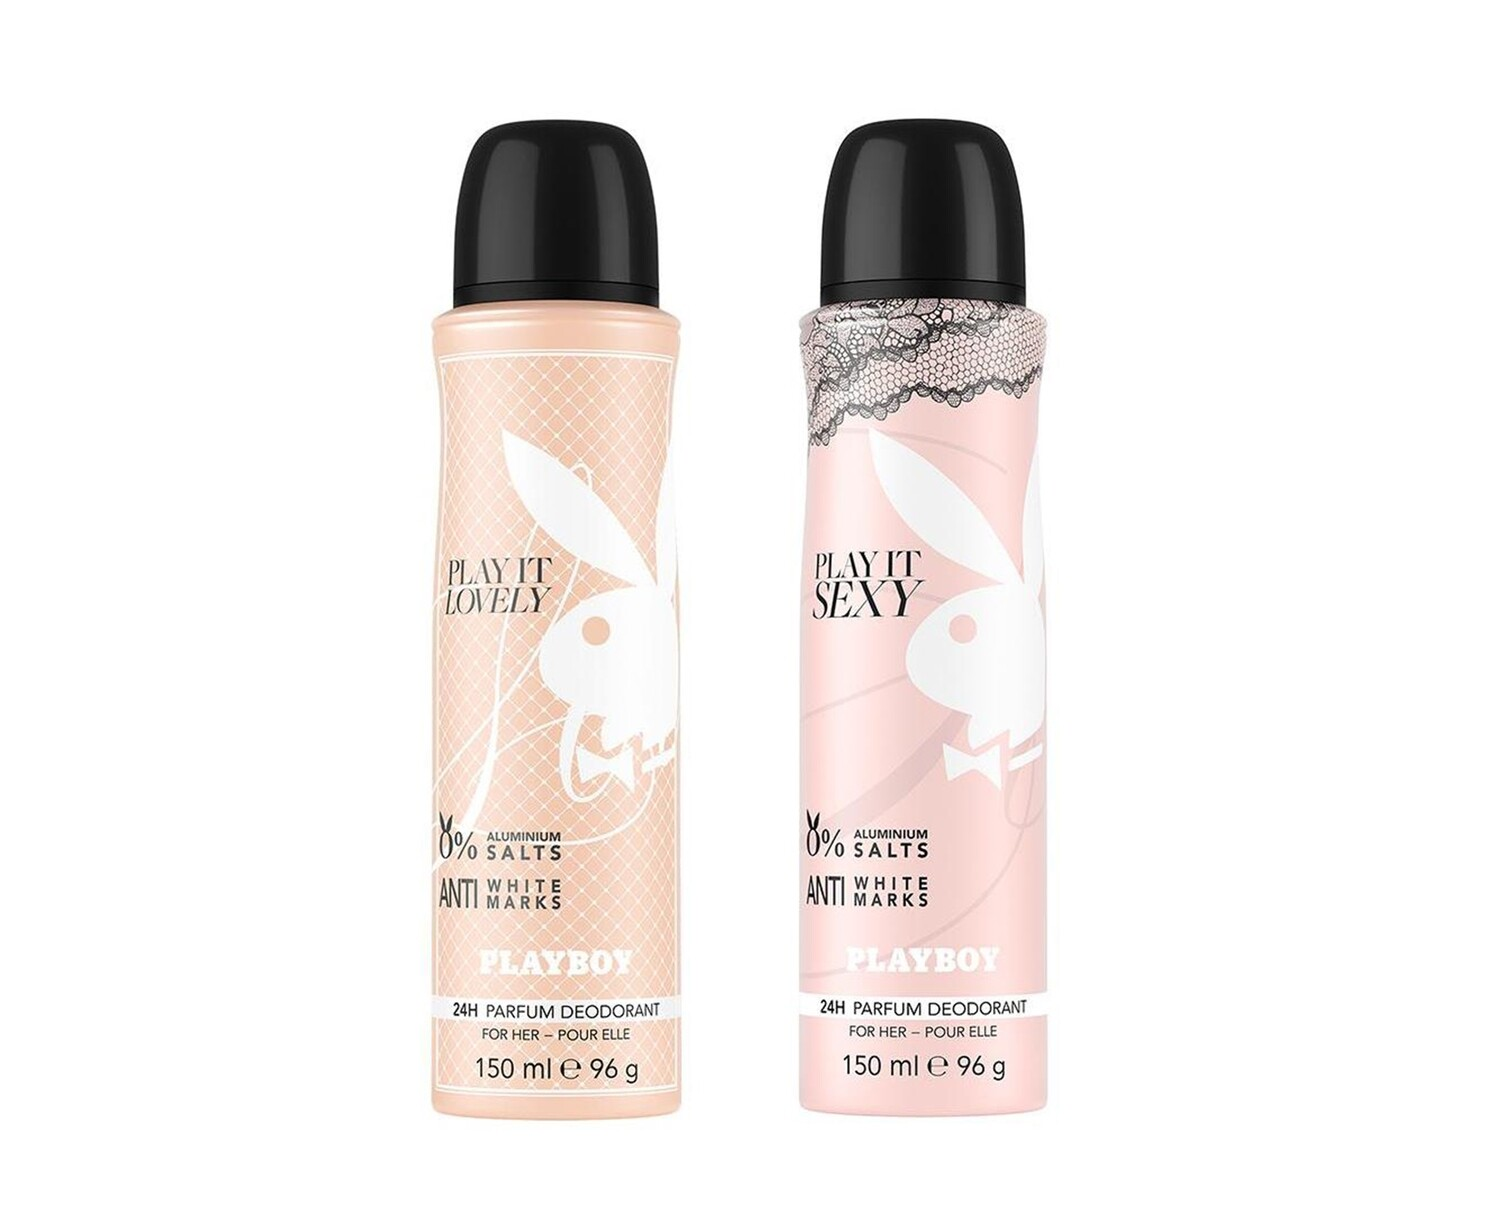 Playboy Lovely + Sexy Deo New Combo Set - Pack of 2 Women